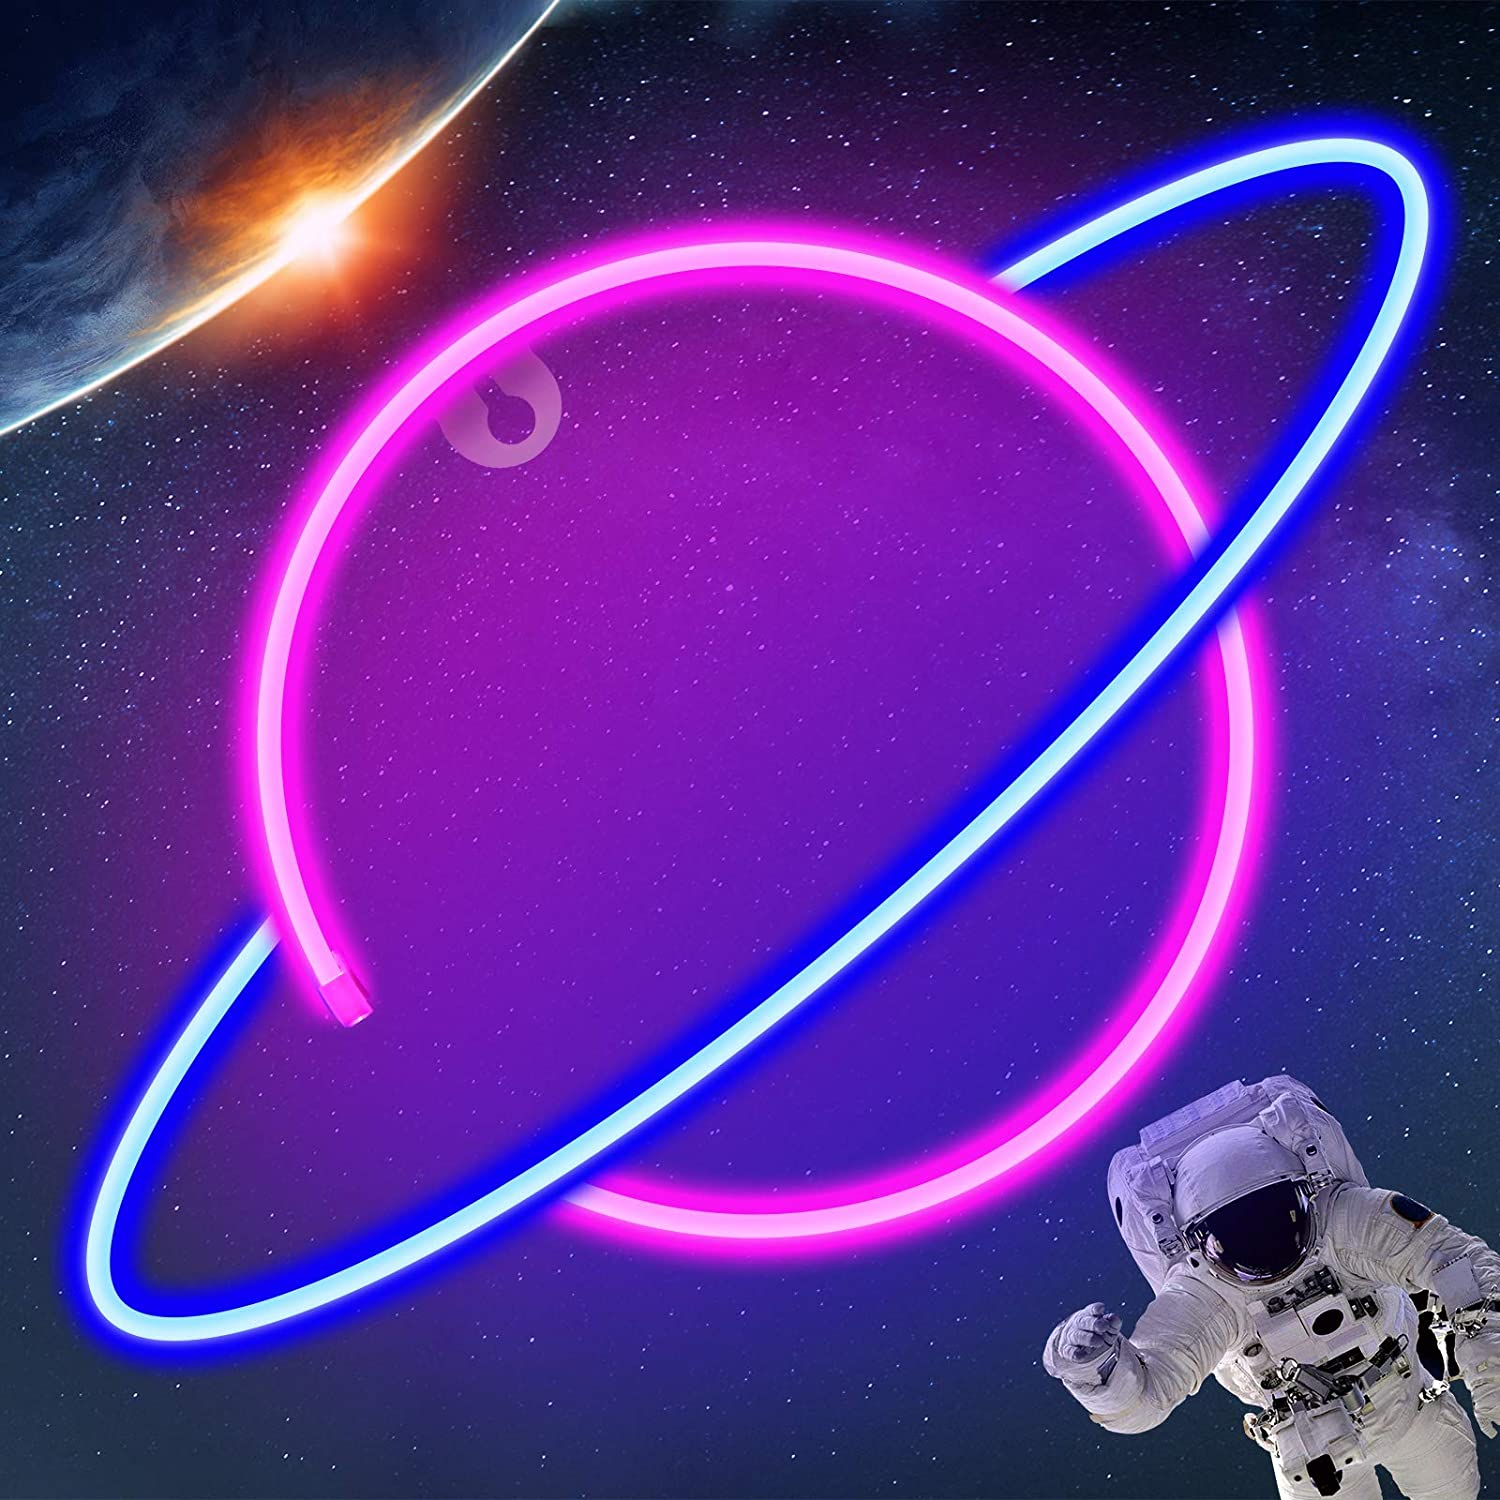 OurWarm Planet Neon Light Signs for Wall Decor, Led Neon Wall Signs Use Battery or USB Operated, Led Light Sign Light up Signs for Bedroom Home Bar Christmas Wedding Birthday Party